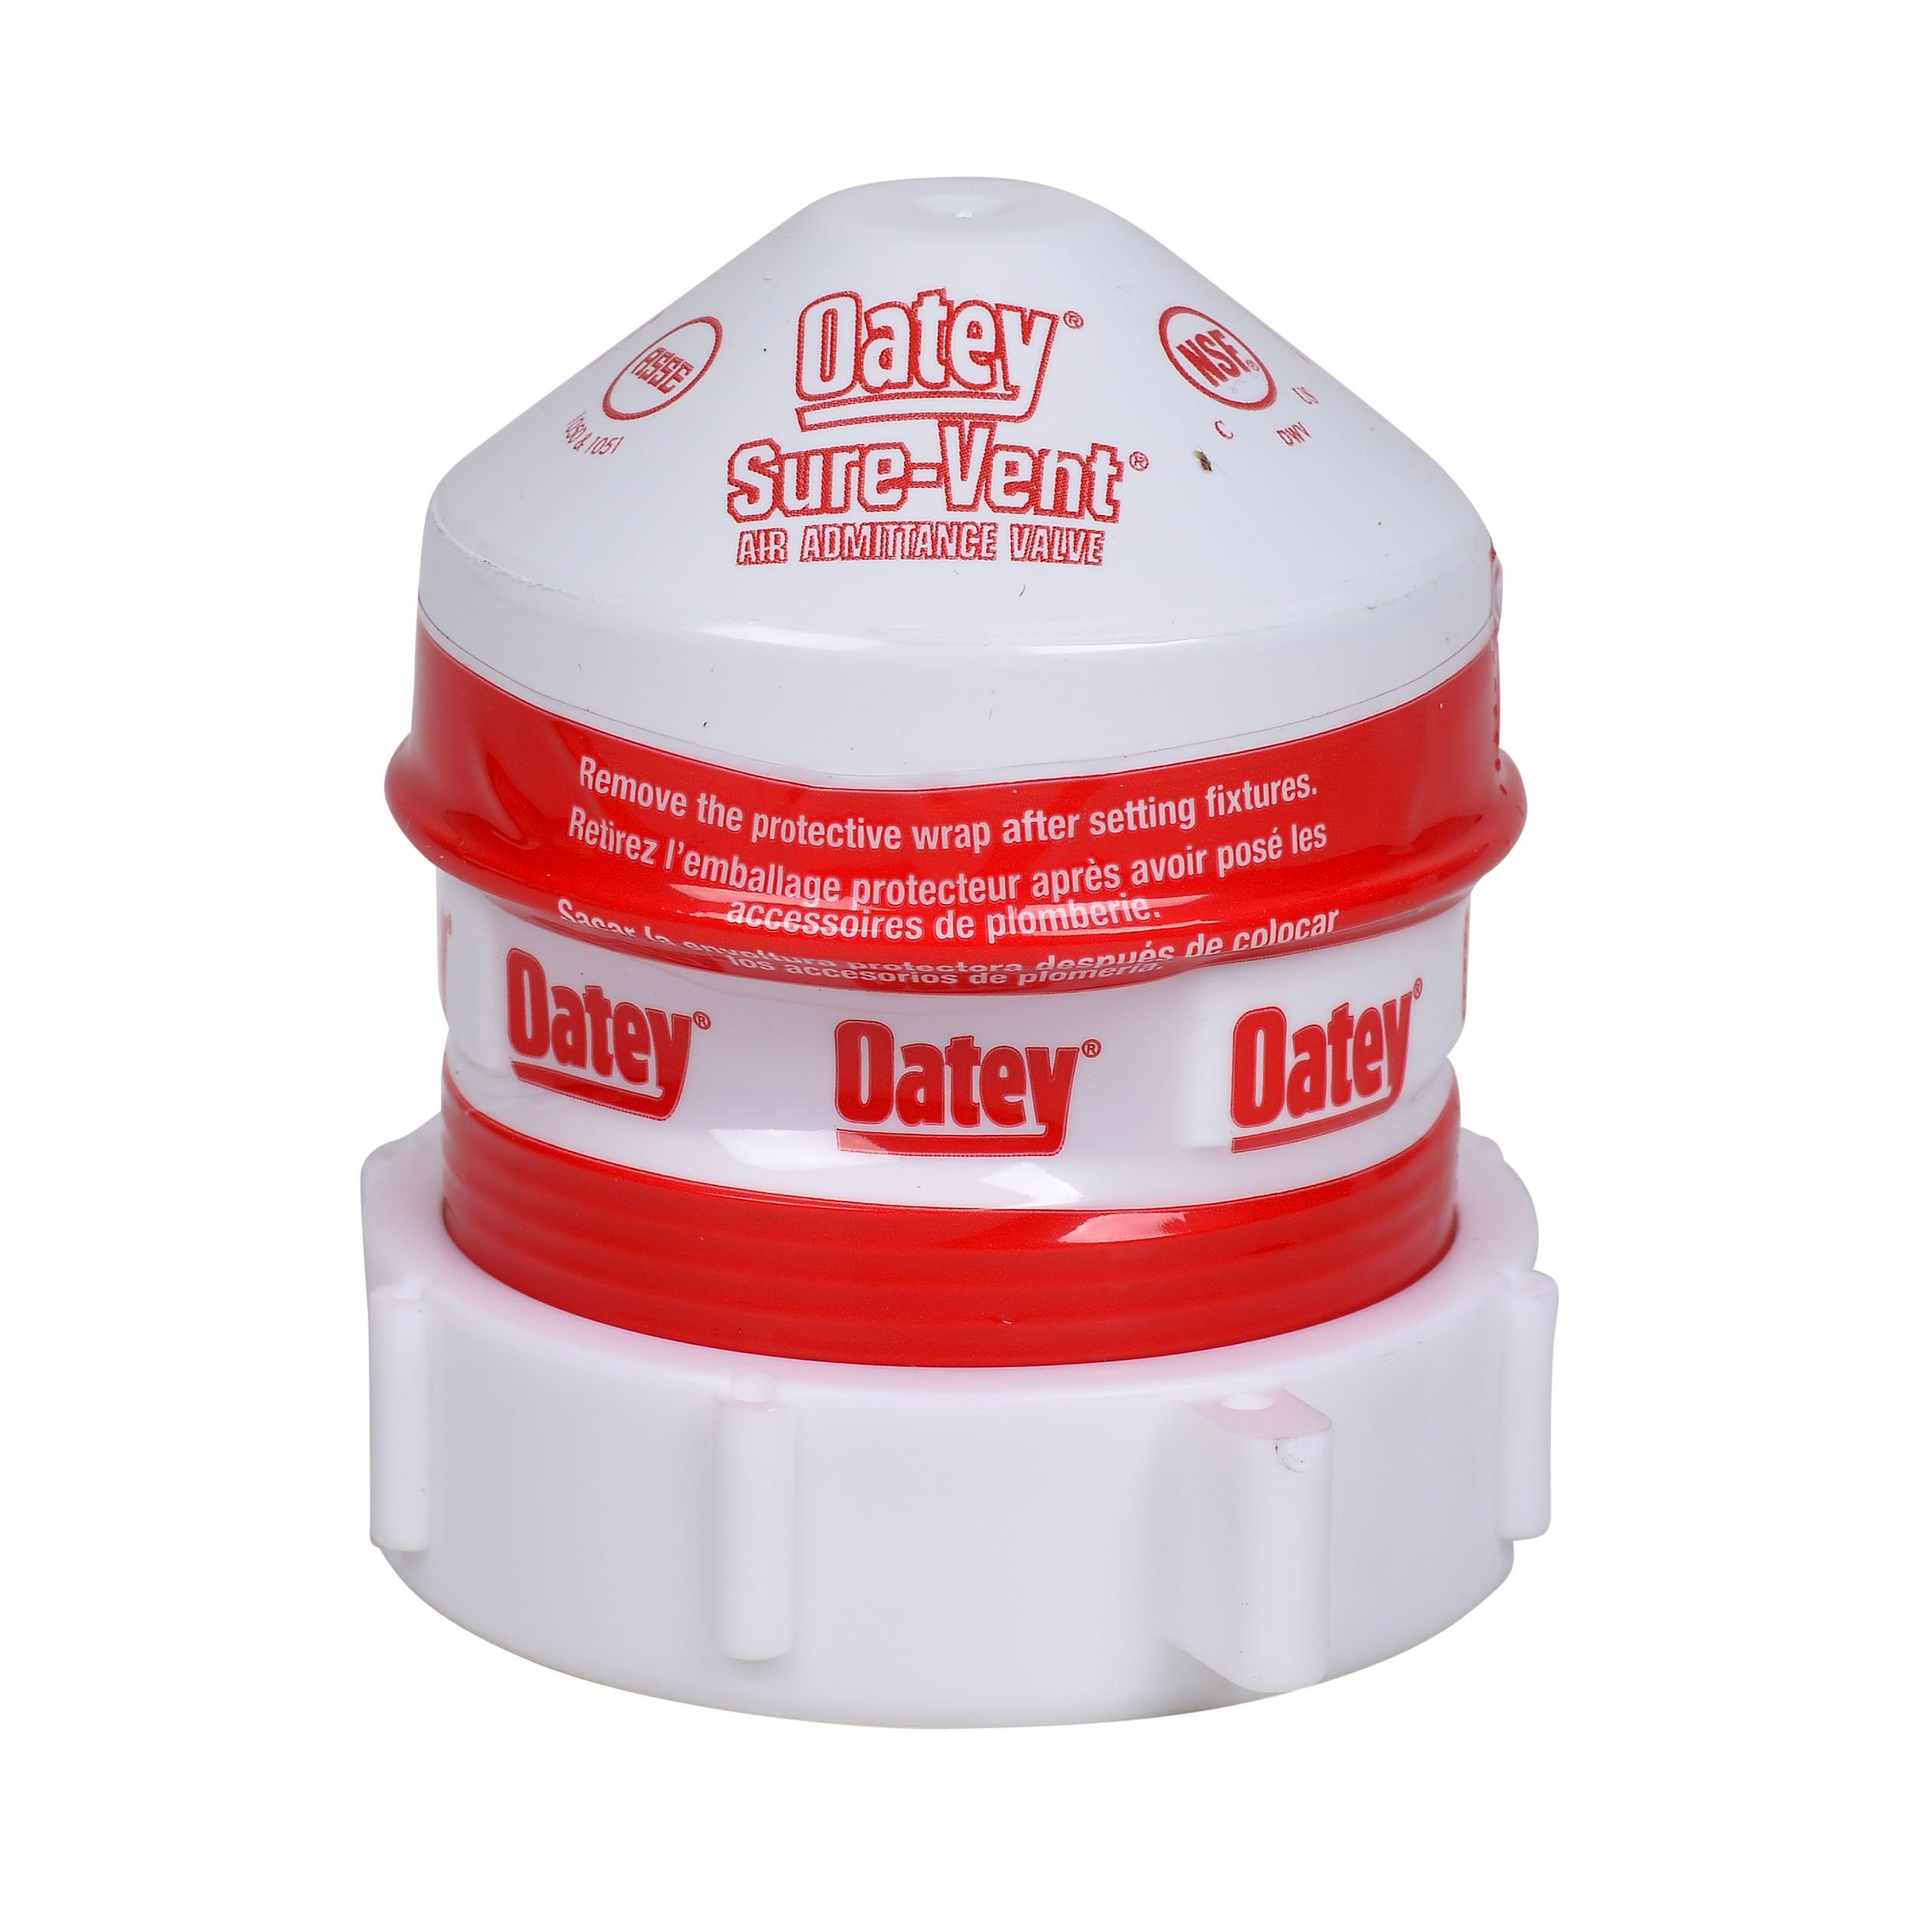 Oatey 39238 1.5'' ? 2'' 20 DFU Sure-Vent AAV with mechanical adapter